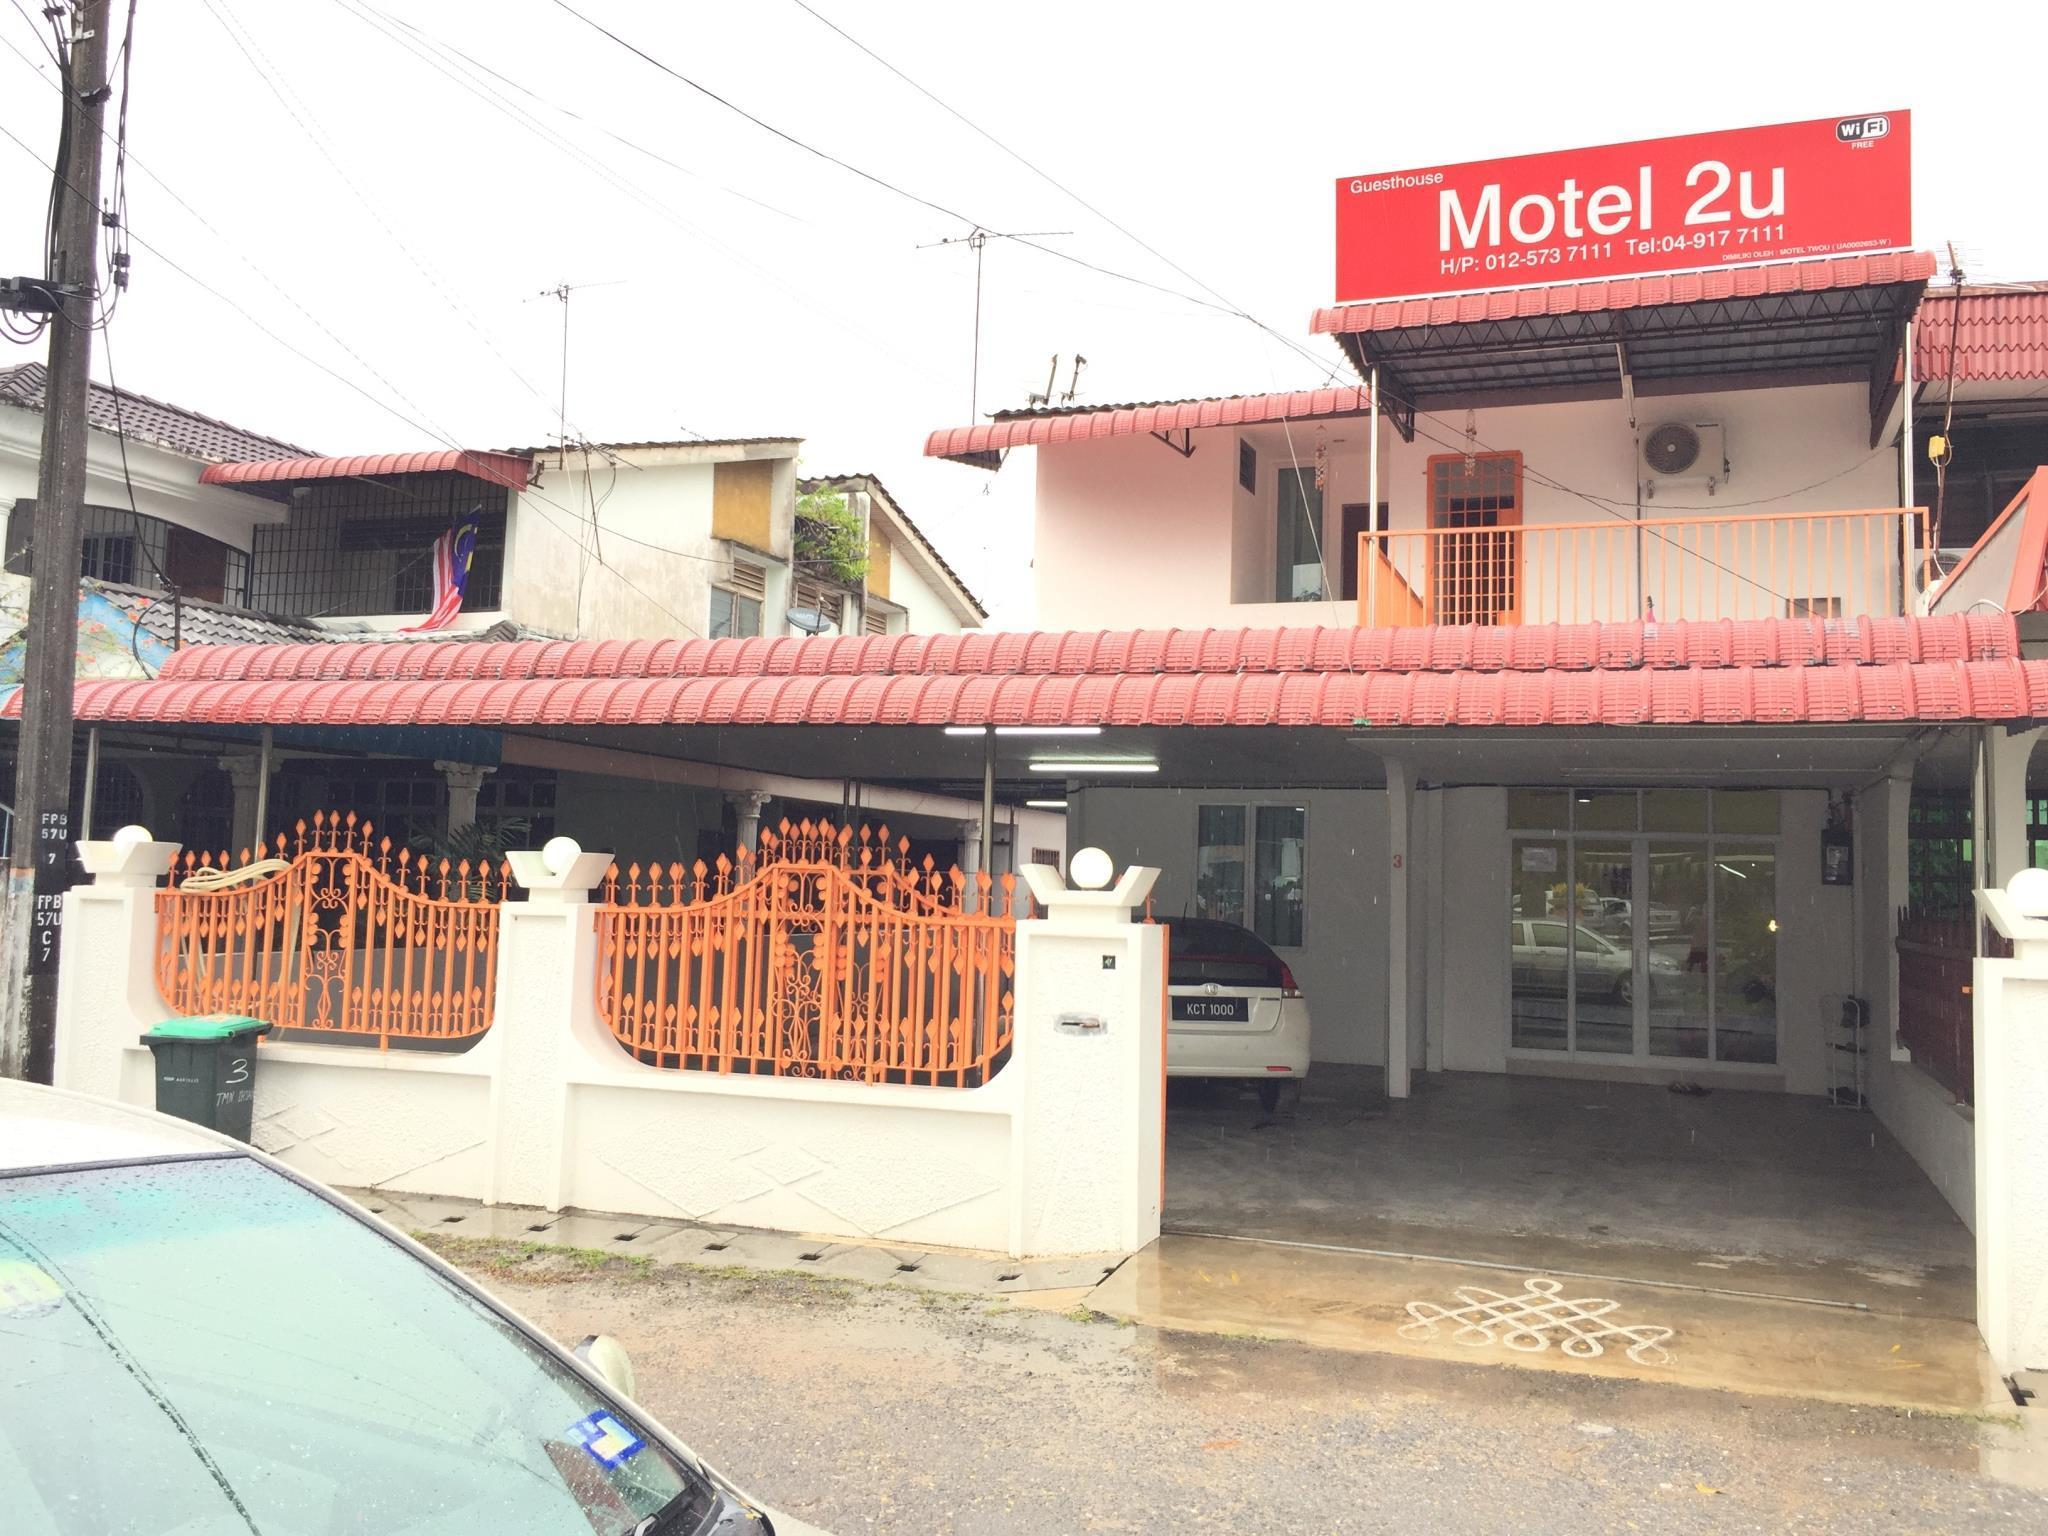 Motel Two U, Kubang Pasu